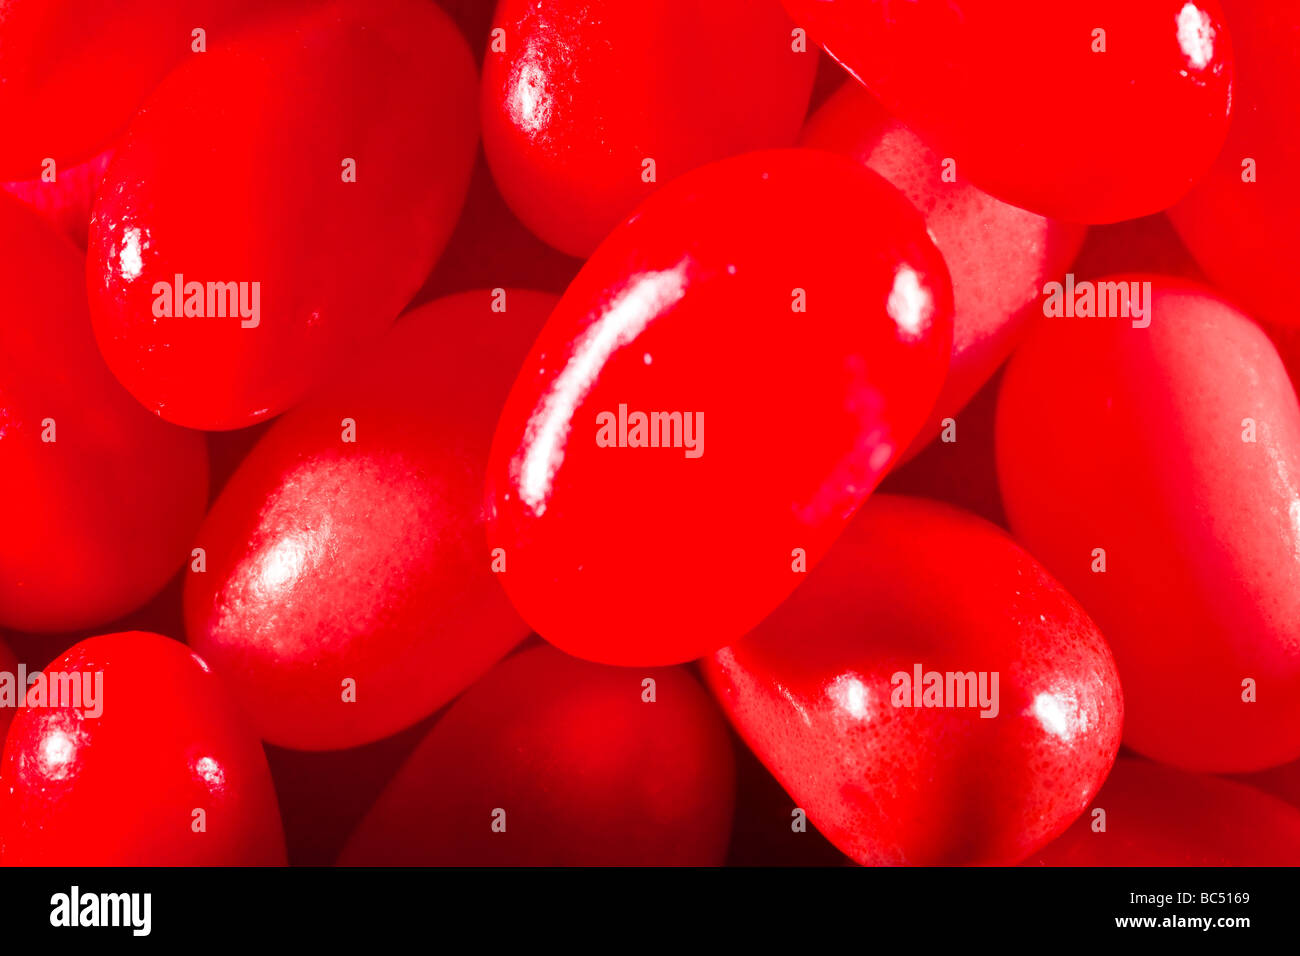 Red jelly beans captured in 16 bit and provided in Adobe1998 color space to hold difficult red tones - Stock Image